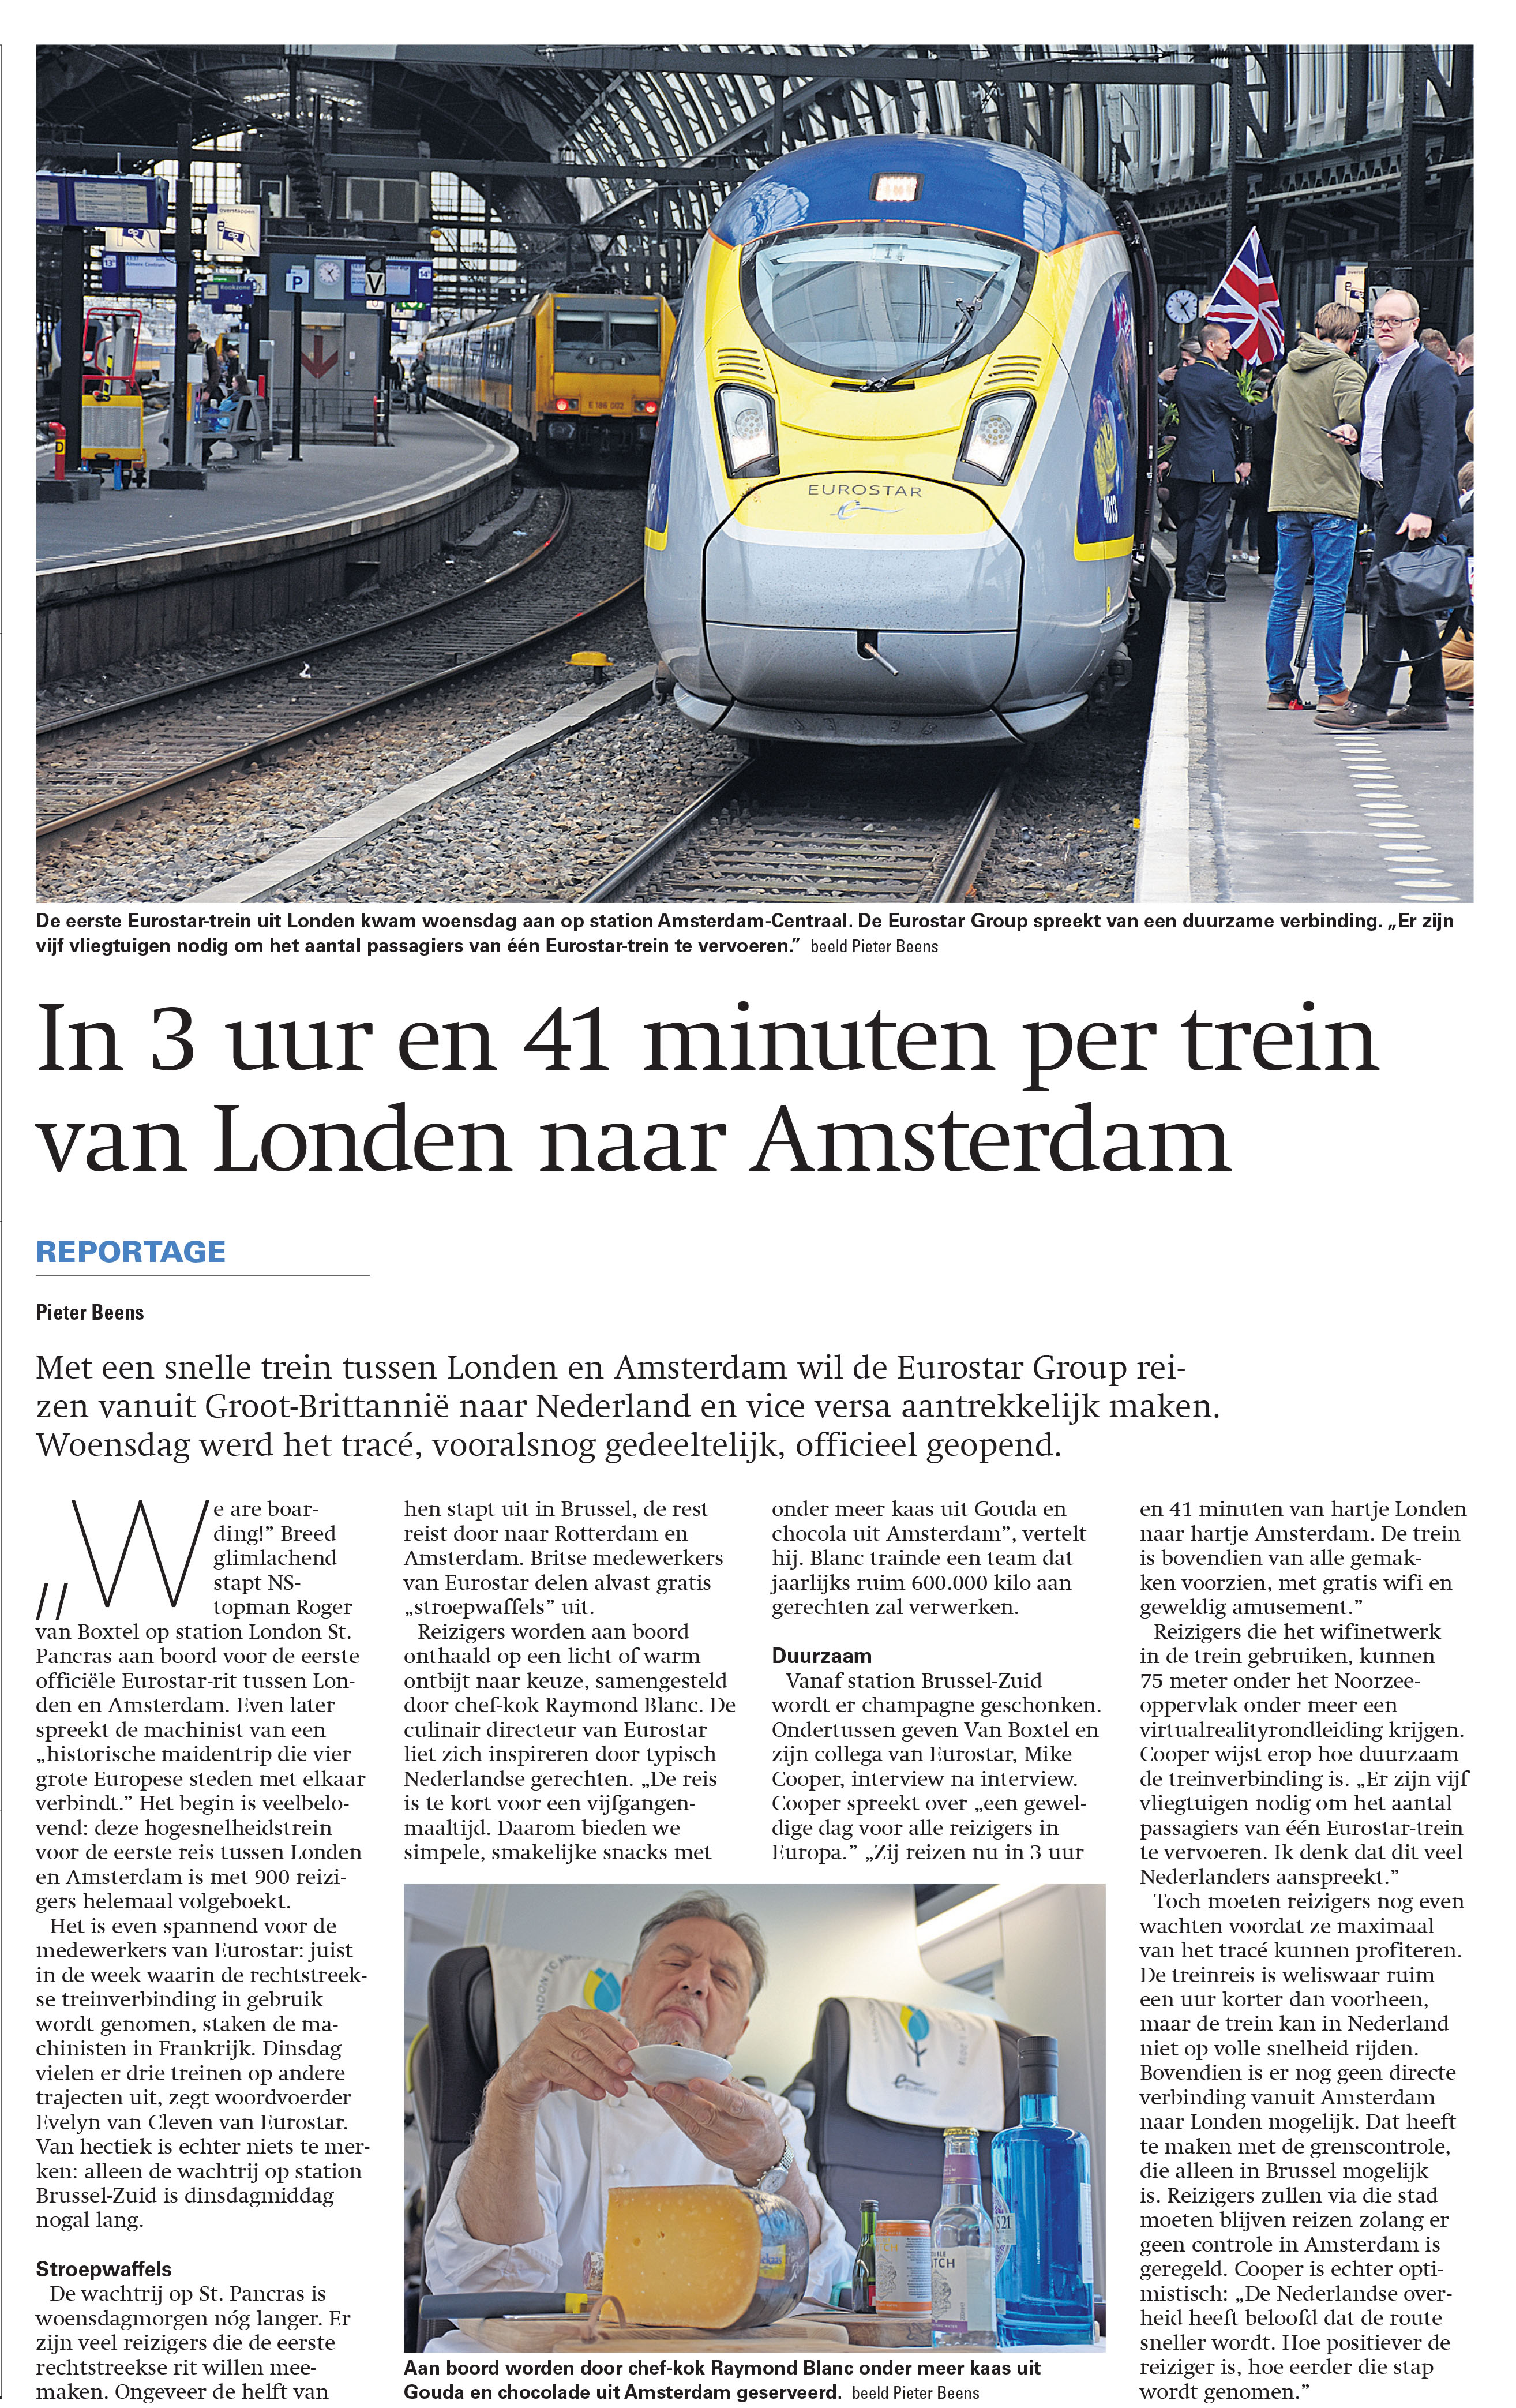 Report On The Eurostar Connection Between Amsterdam And London For